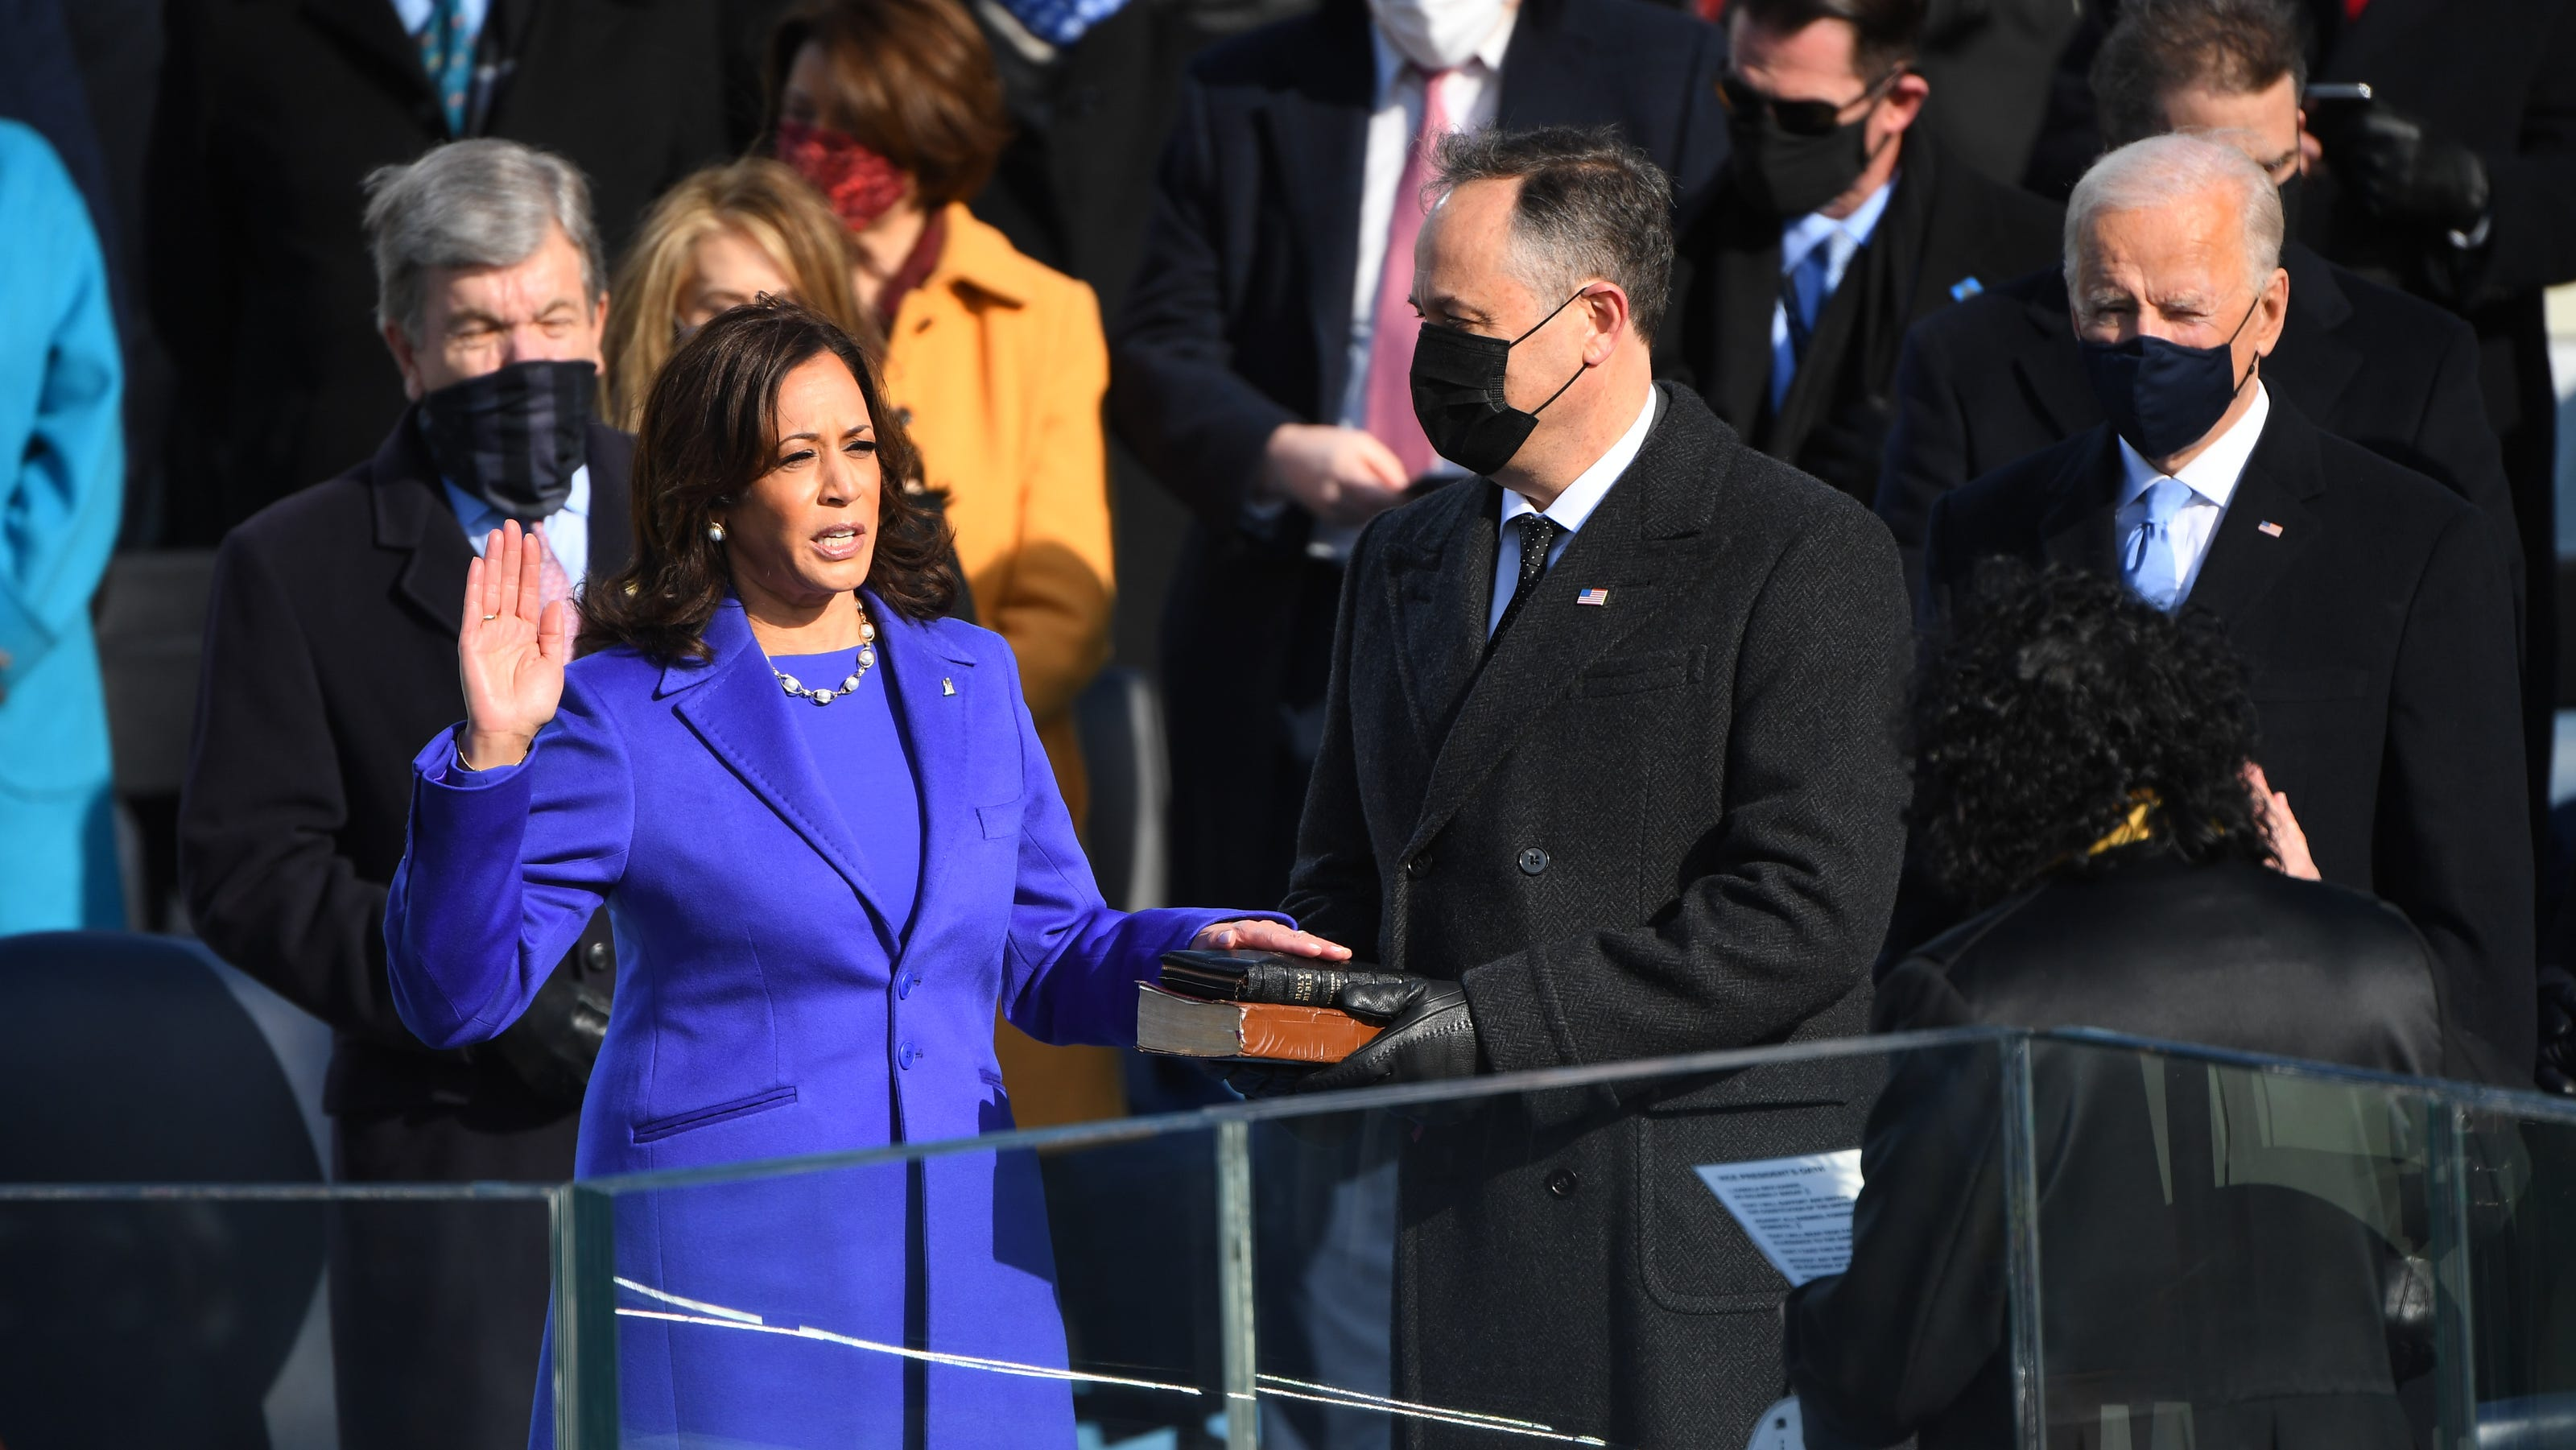 Fact check: Vice President Kamala Harris used 2 Bibles when she was sworn in